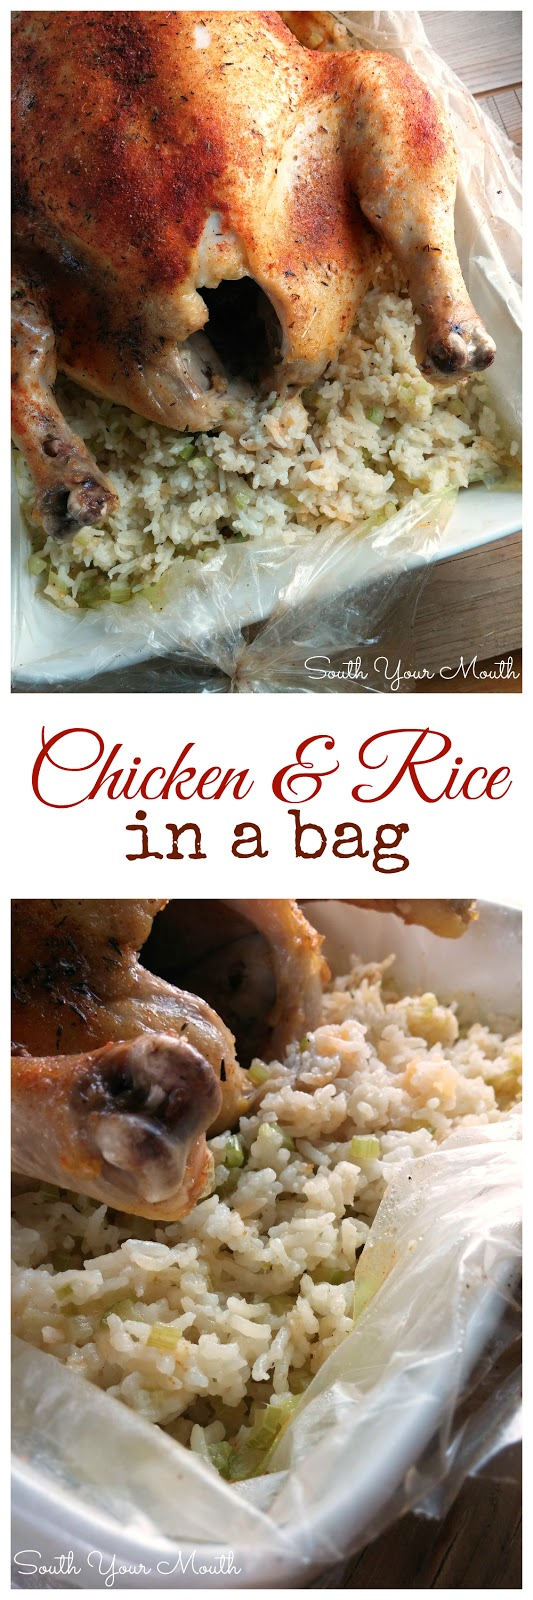 Chicken & Rice in a Bag! An easy one-pan supper recipe for chicken that cooks up moist and tender like a rotisserie chicken that's surrounded by mounds of flavorful rice!